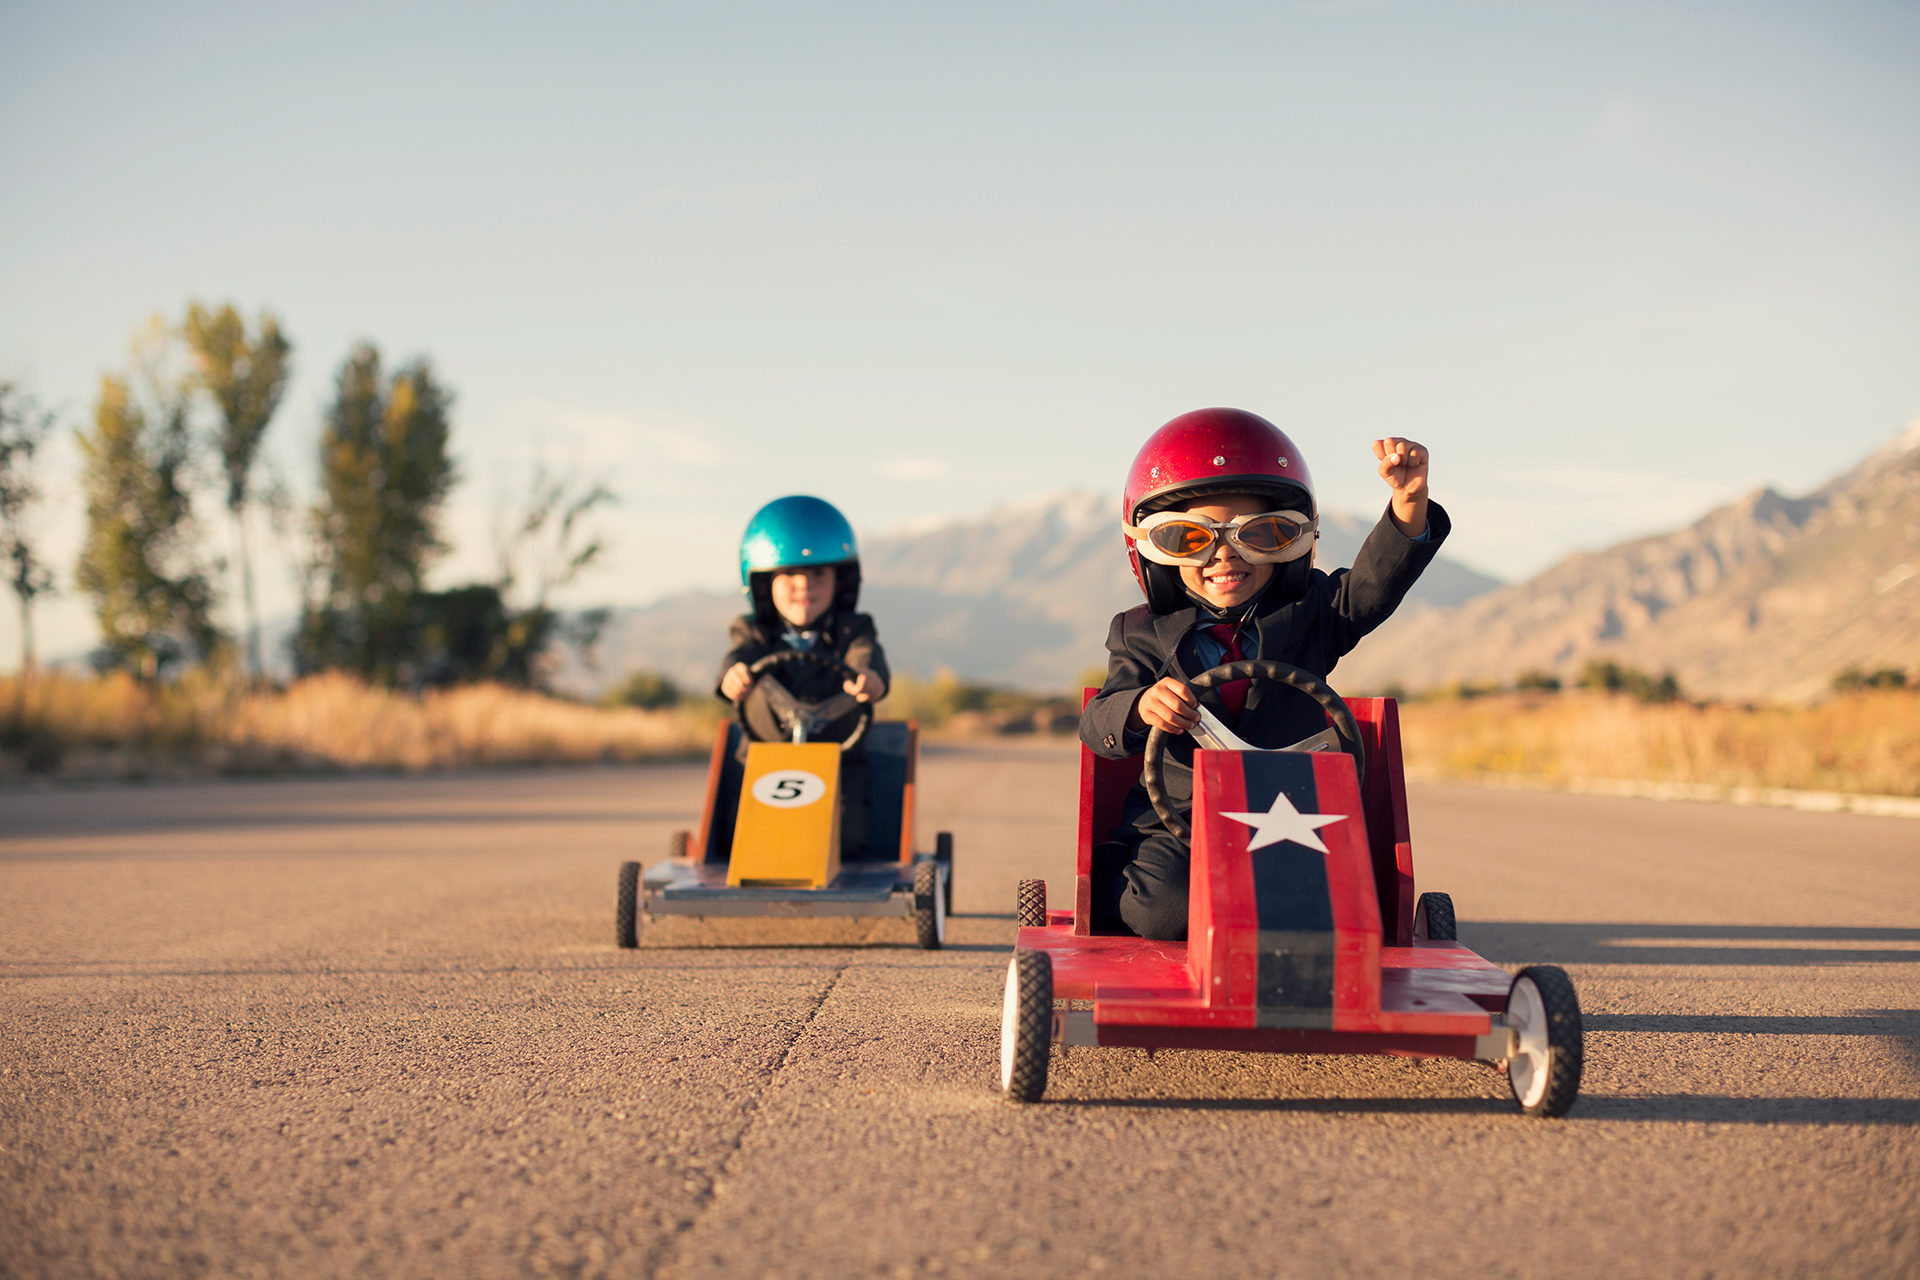 Young-Business-Boys-in-Suits-Race-Toy-Cars-507282334_5760x3840-1920x1280